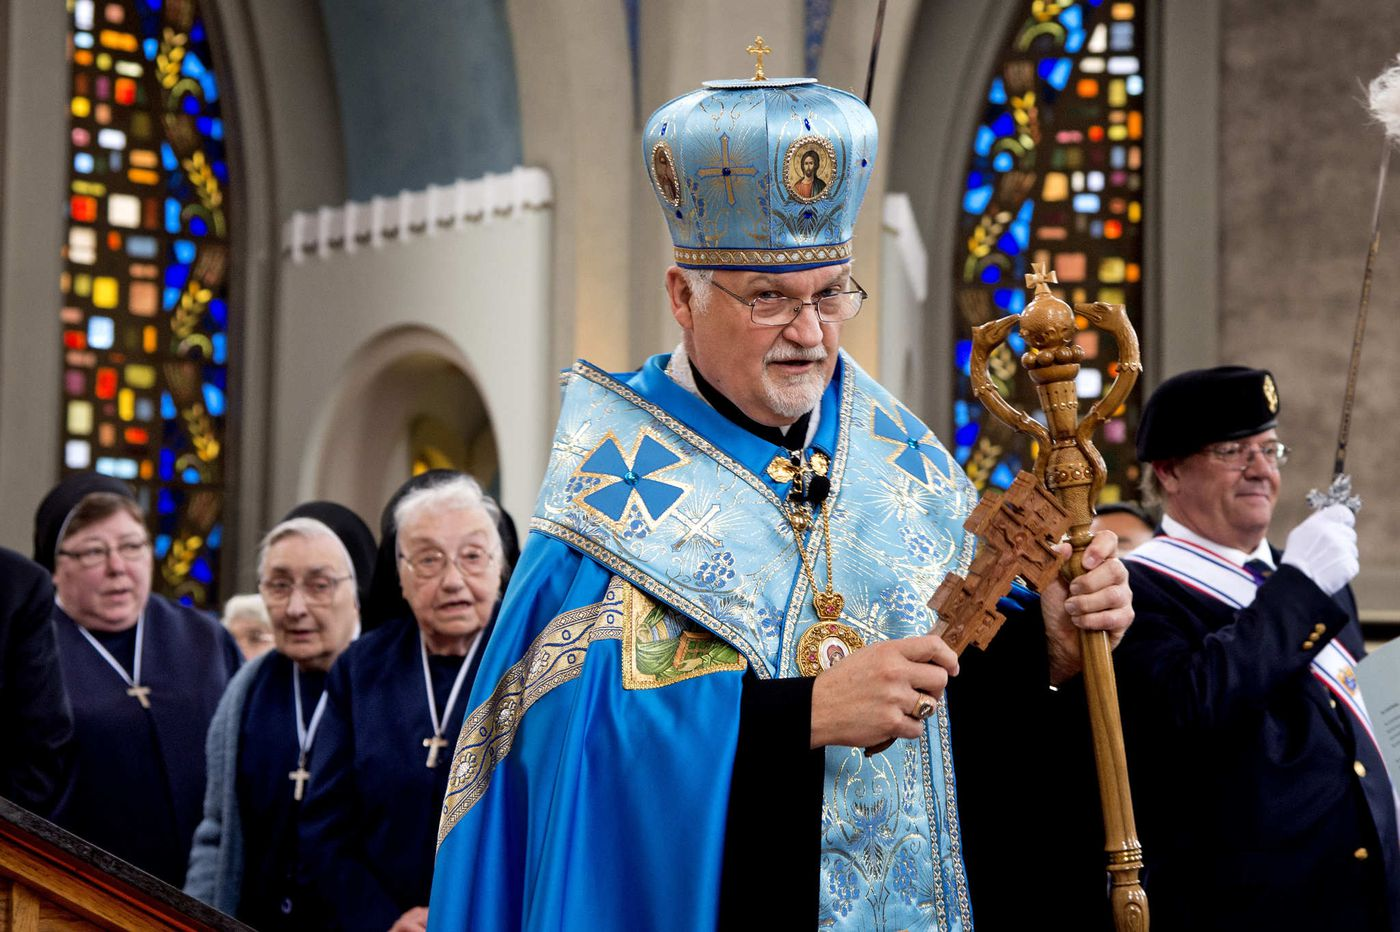 The archbishop of the Ukrainian Catholic Church in Philadelphia retires and goes home